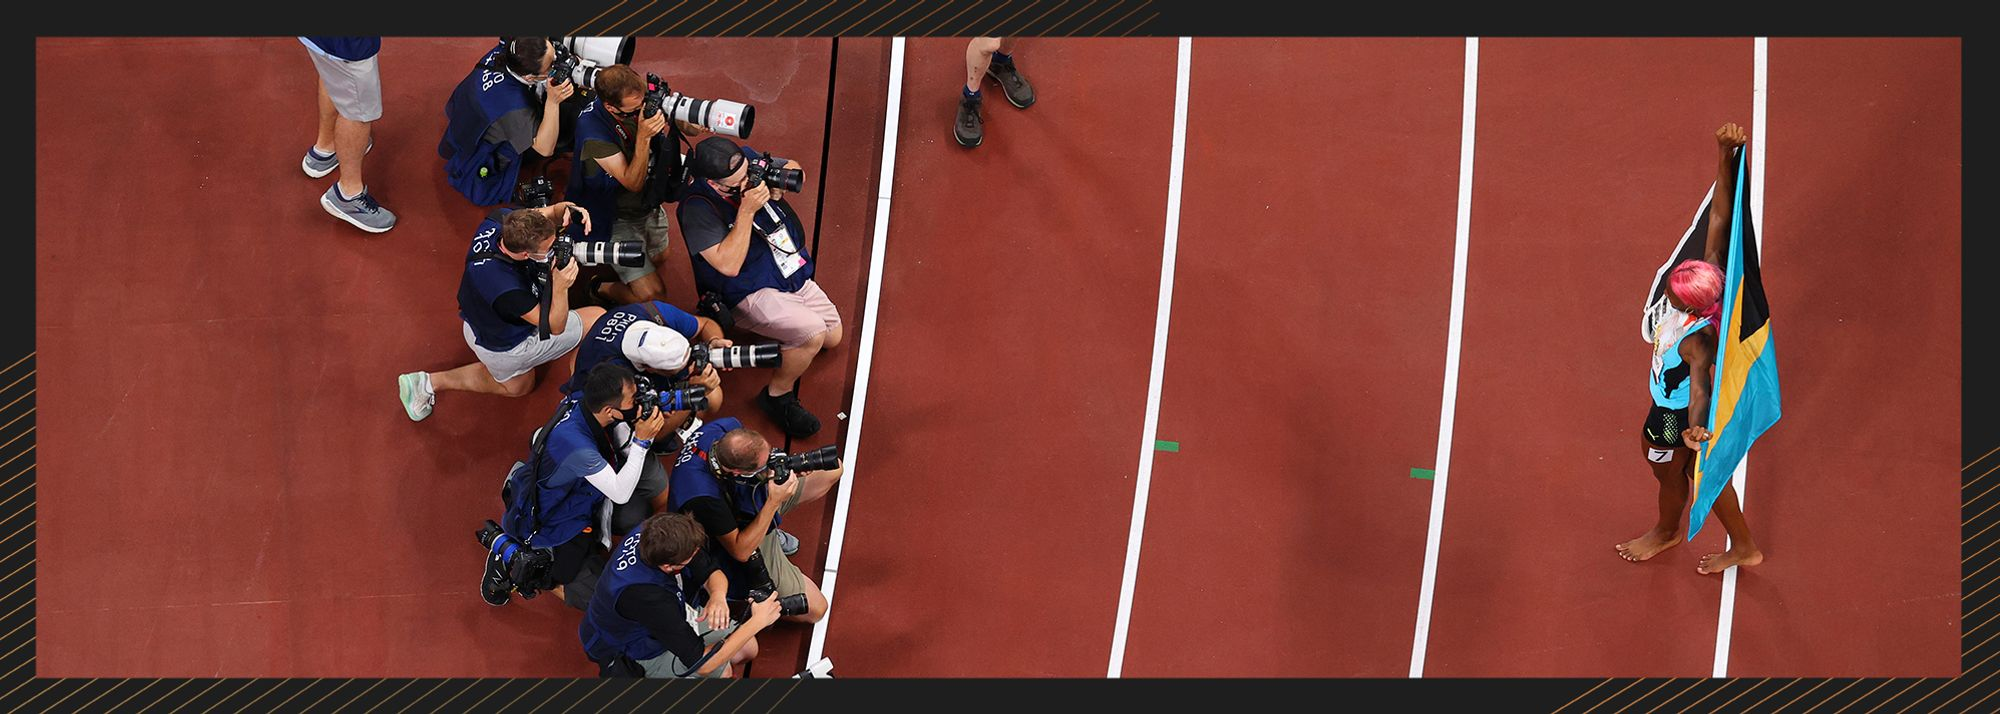 World Athletics will present an award for the best athletics photograph of the year at the World Athletics Awards 2021.